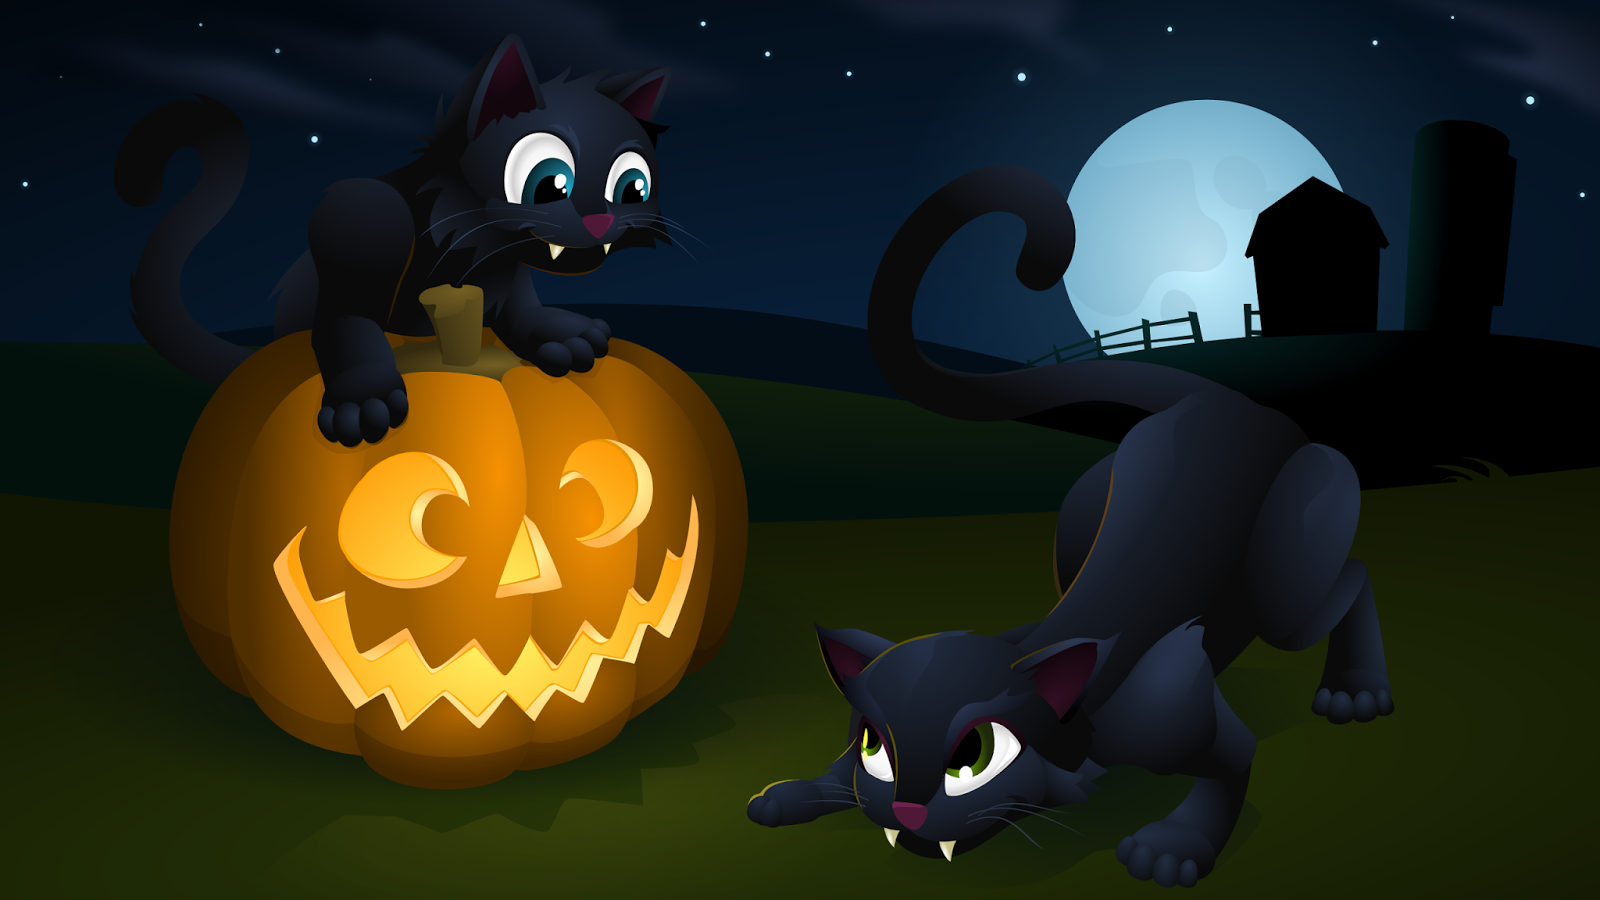 Halloween-scary-cat-cartoons-images-free-download-facebook-whatsapp-sharing.jpg